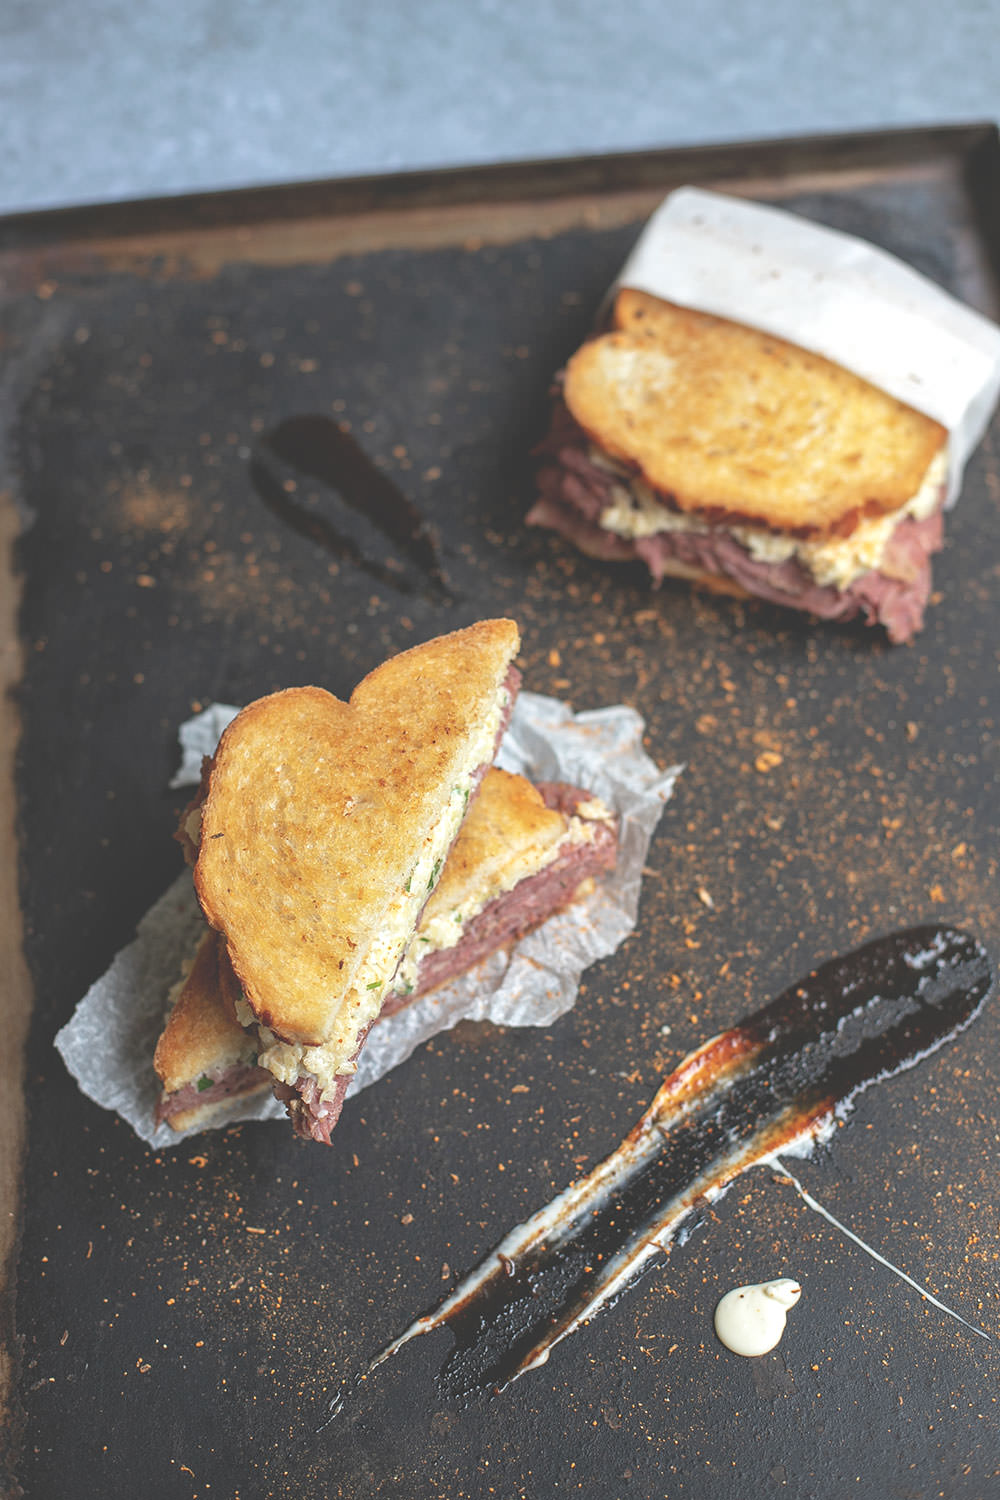 Pastrami Sandiwch von Onkel Kethe | Food.Blog.House 2018 Holland | moeyskitchen.com